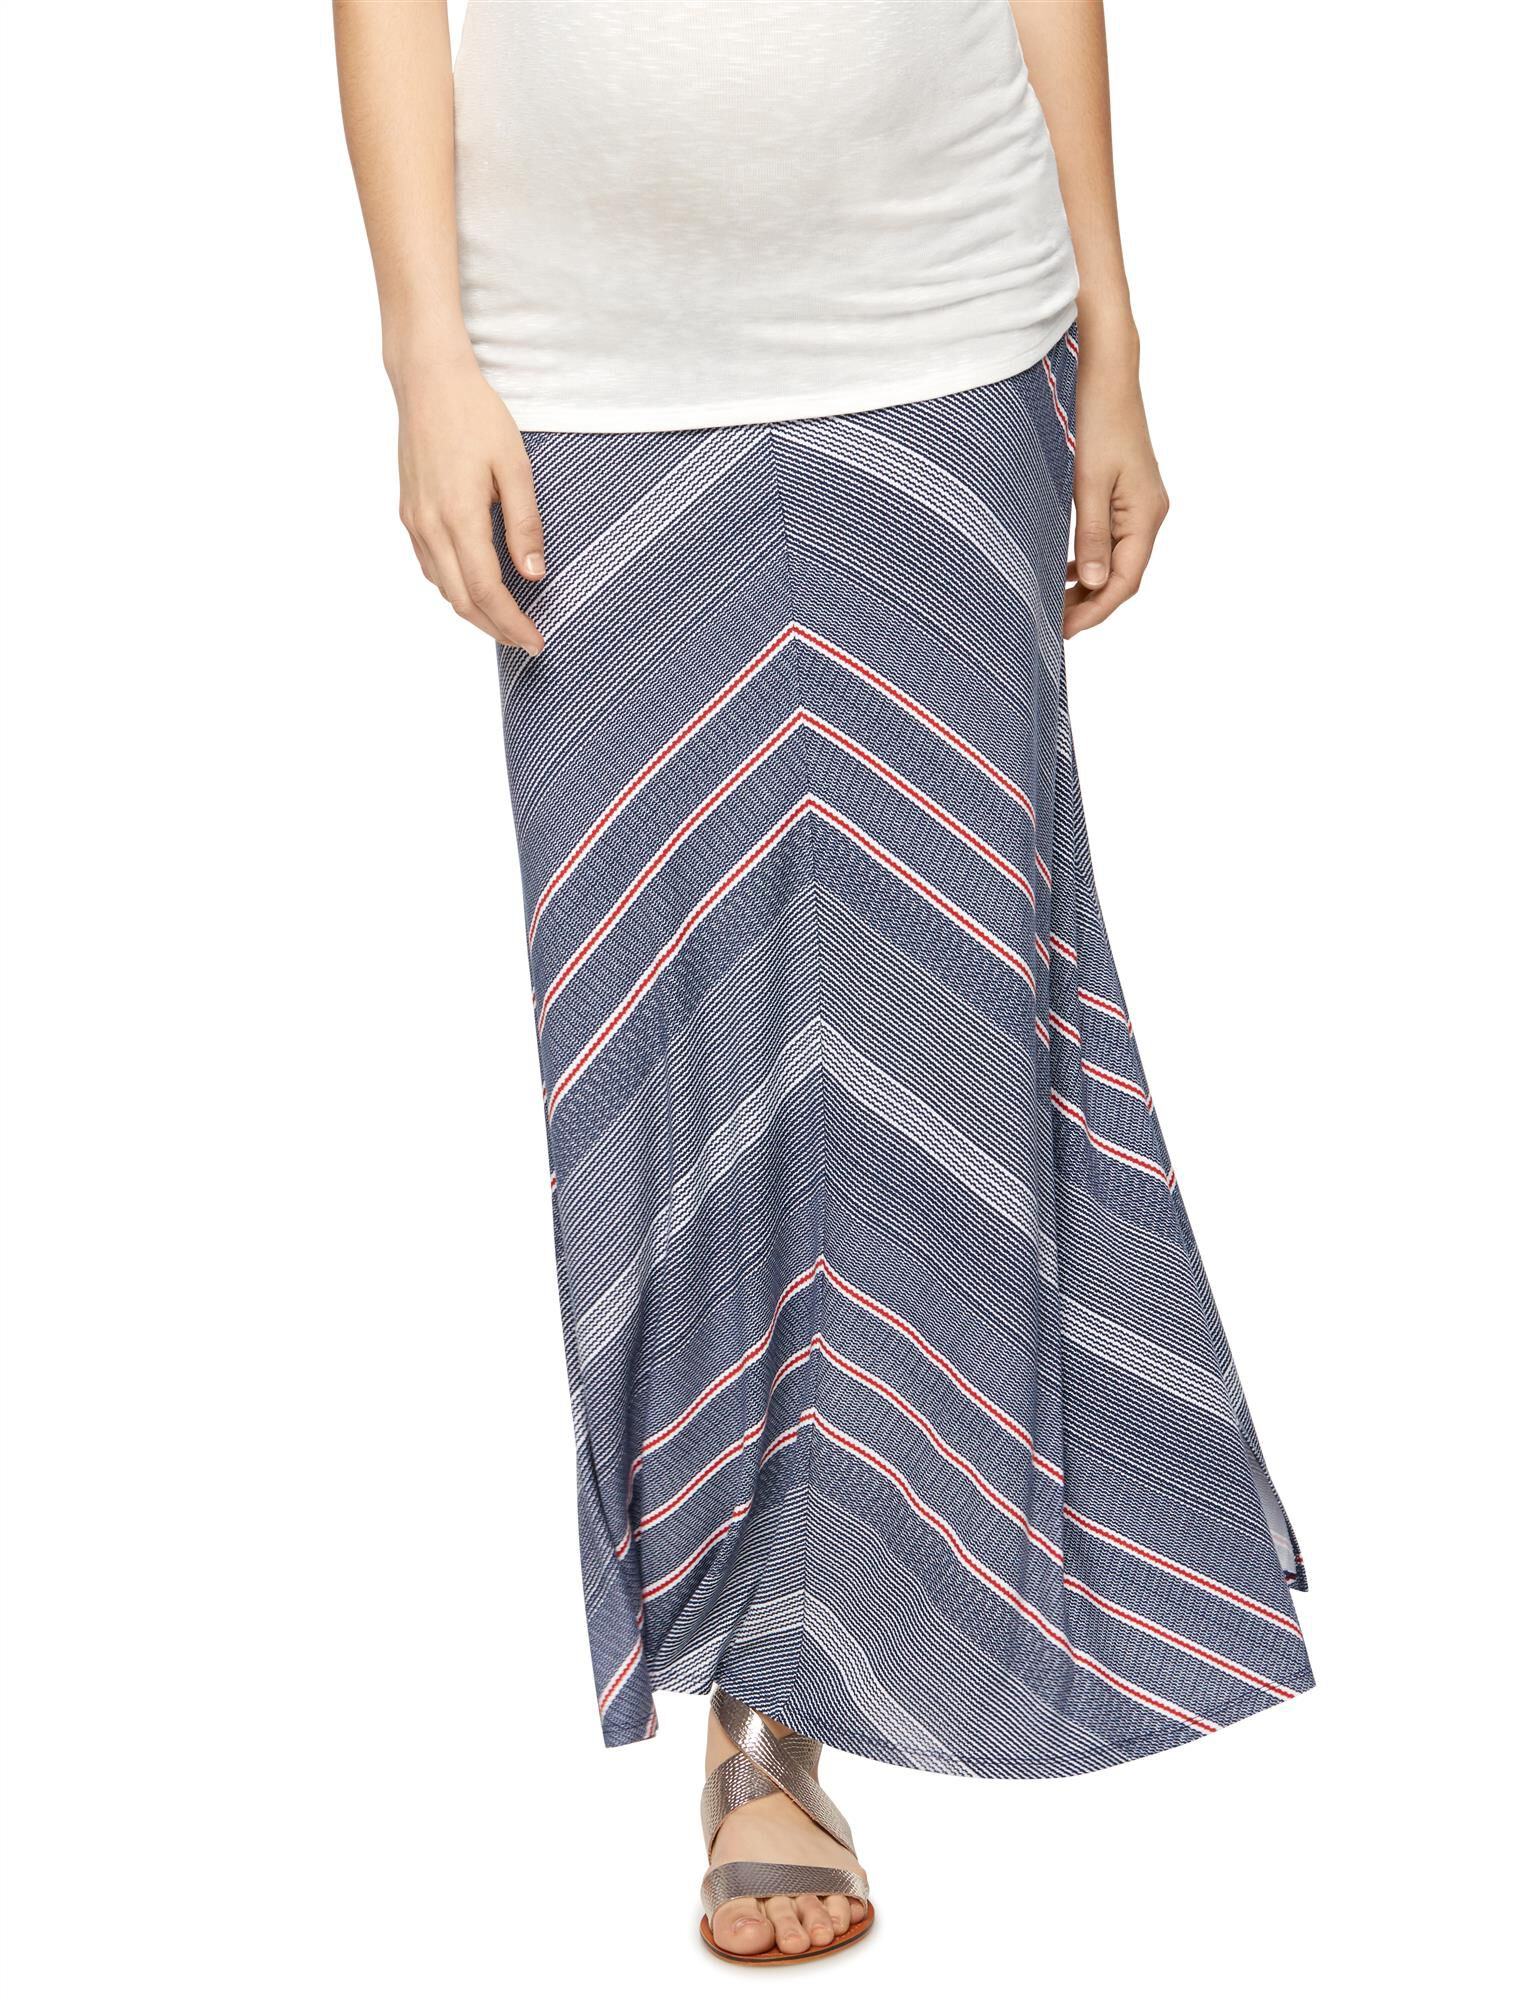 Self Belly Maternity Maxi Skirt